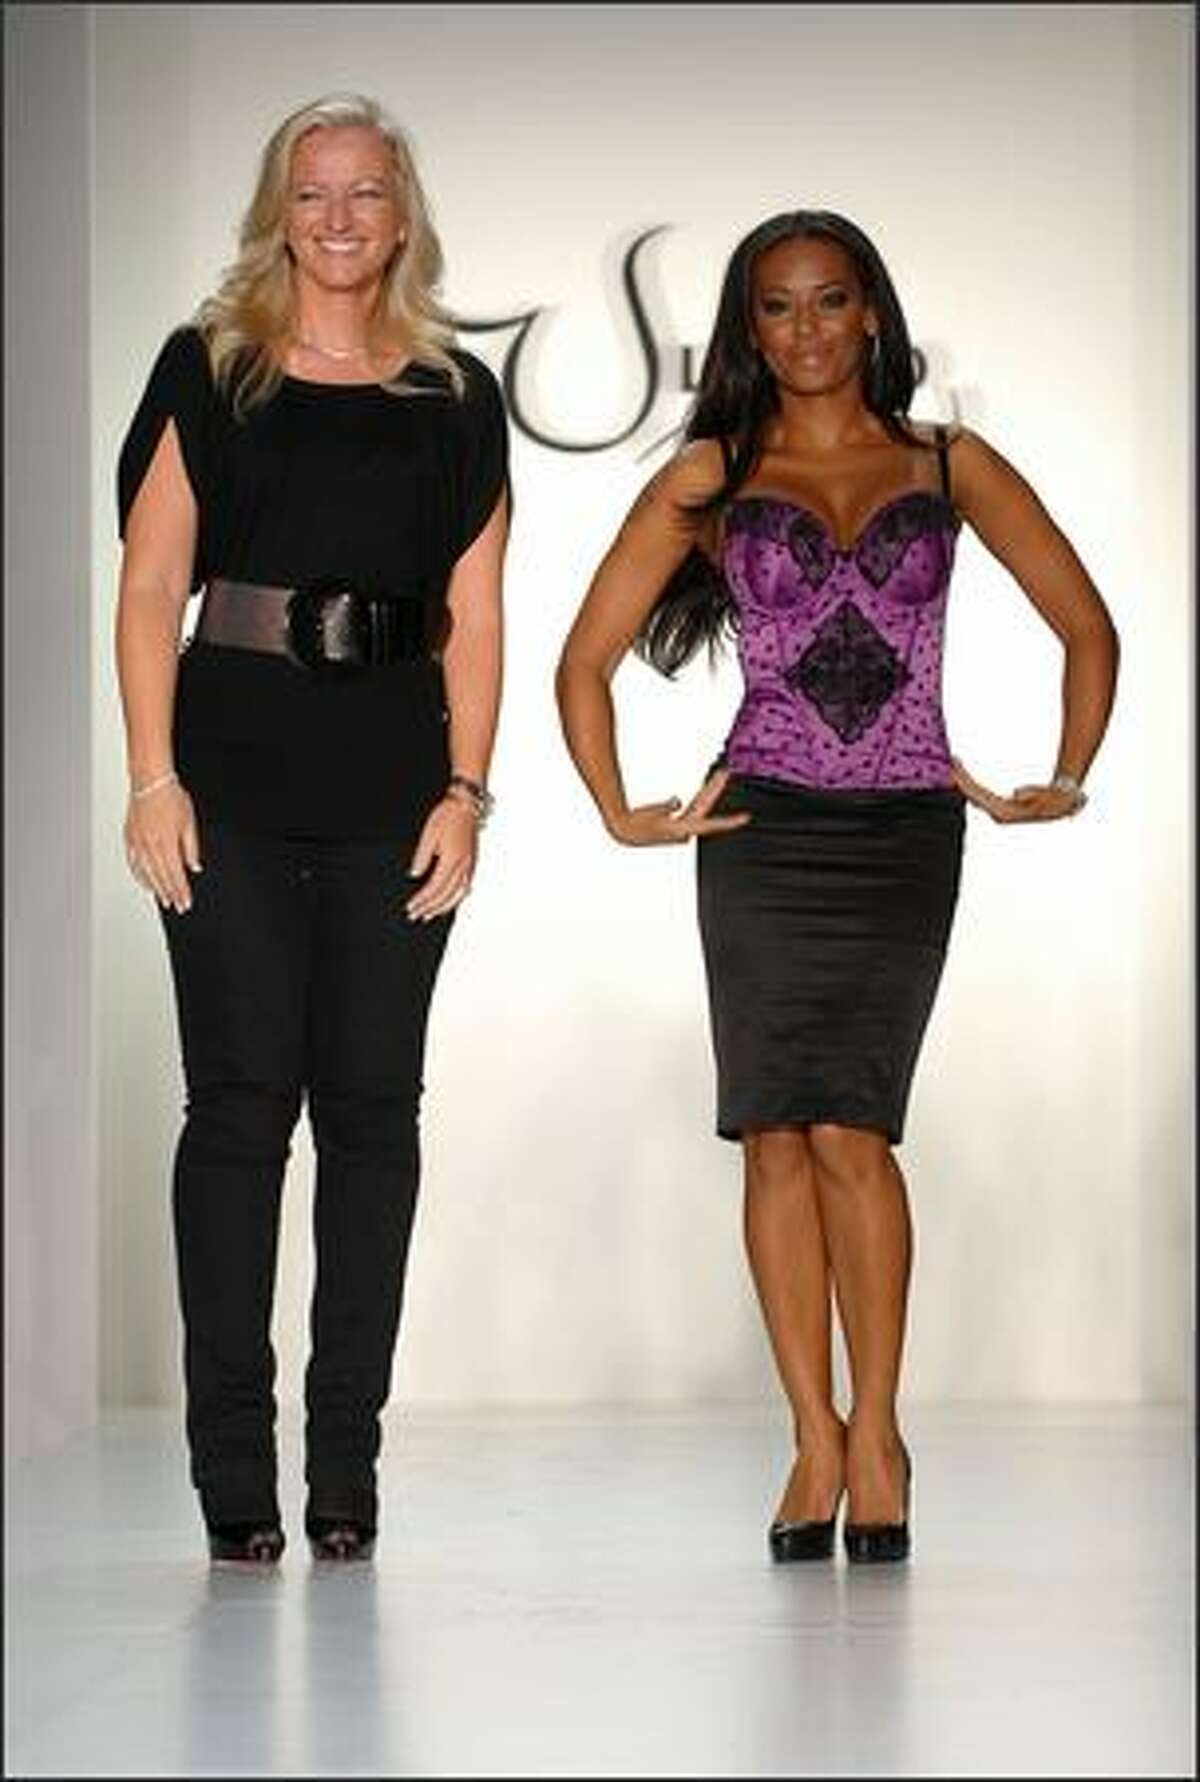 Ultimo Scottish designer lingerie brand founder Michelle, left, and pop singer Melanie Brown appear at the Mel B With Ultimo Spring 2009 fashion show during Mercedes-Benz Fashion Week at the Metropolitan Pavilion on Tuesday in New York City.